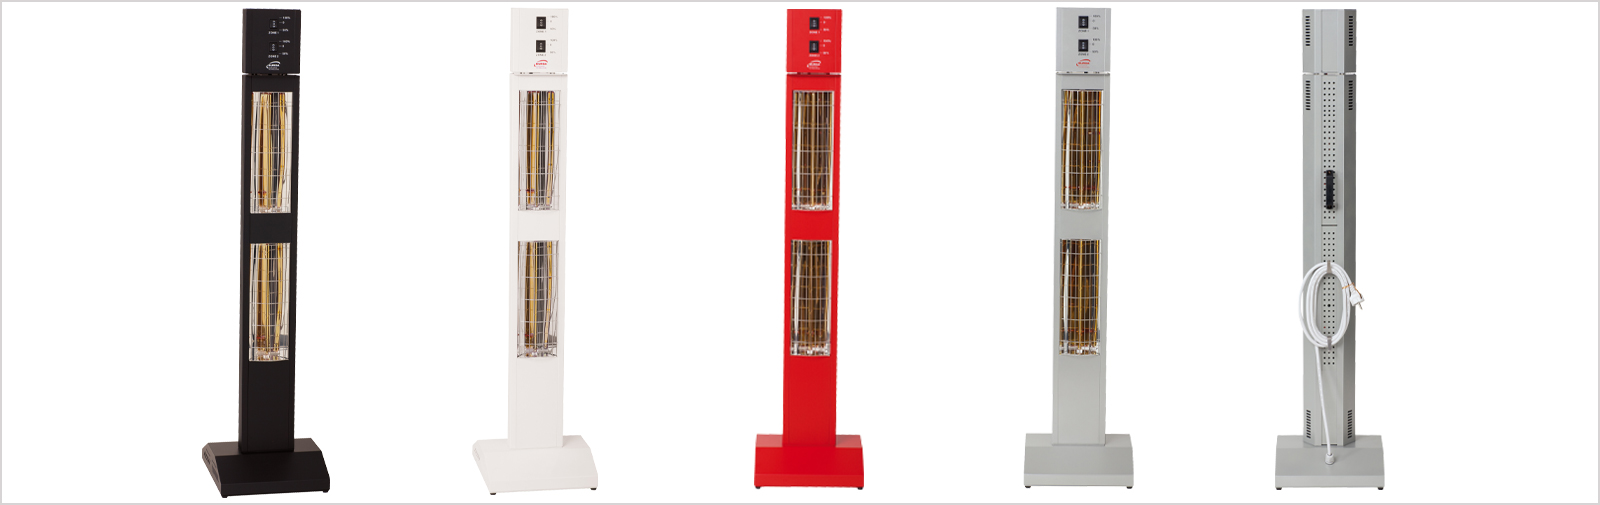 chauffages stationnement infrarouges Smart Tower IP24